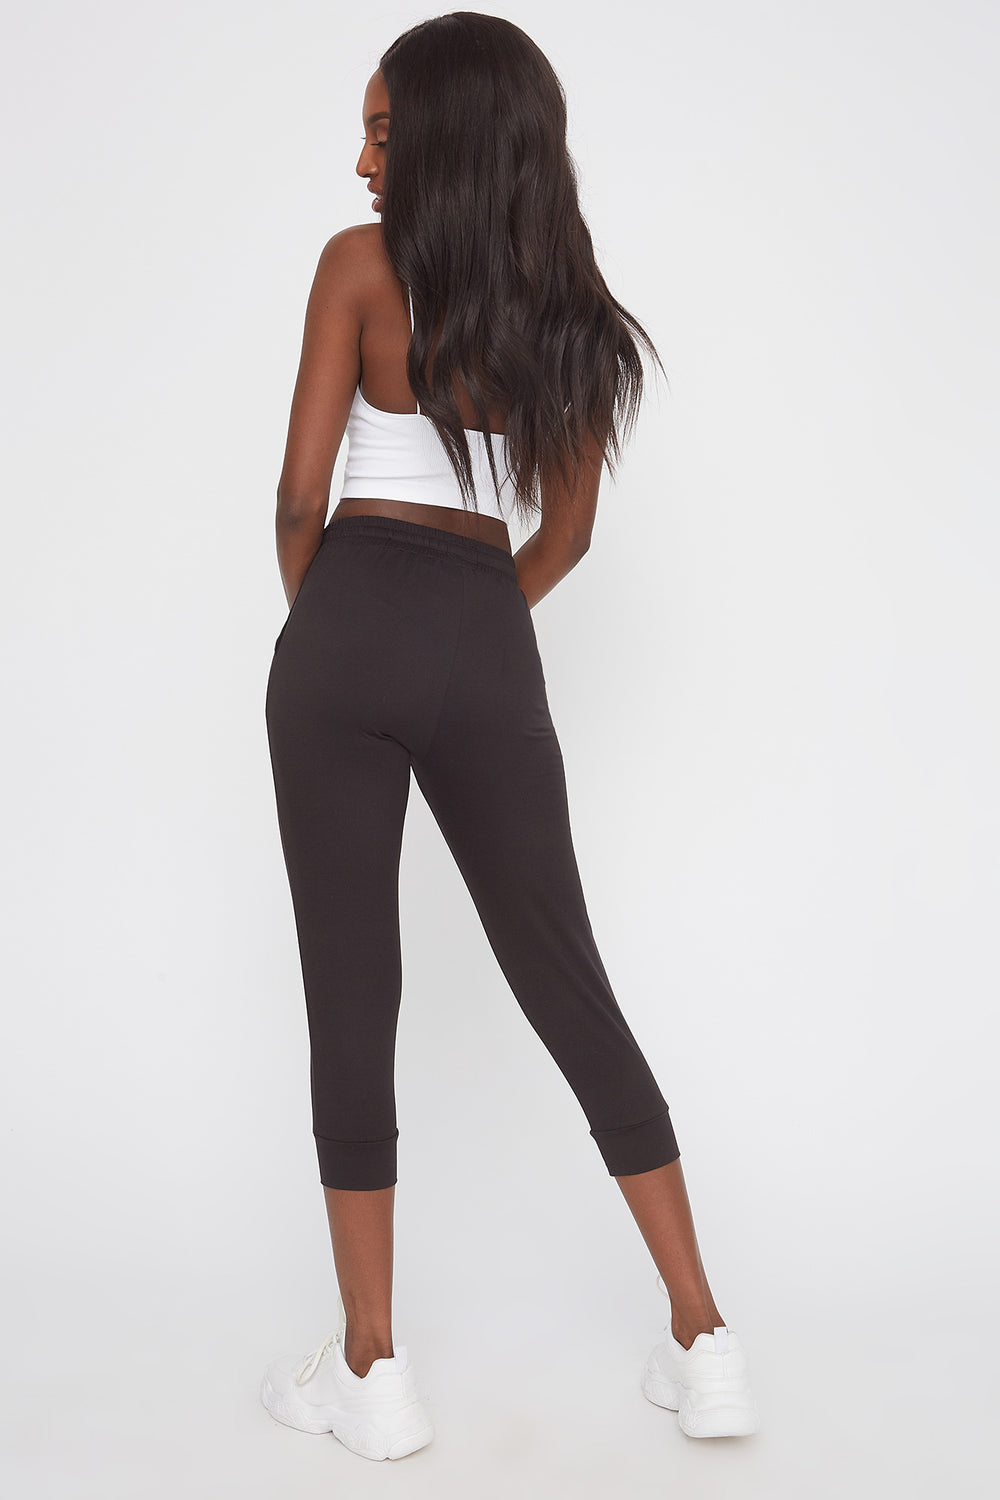 Pantalon de jogging court super doux Noir